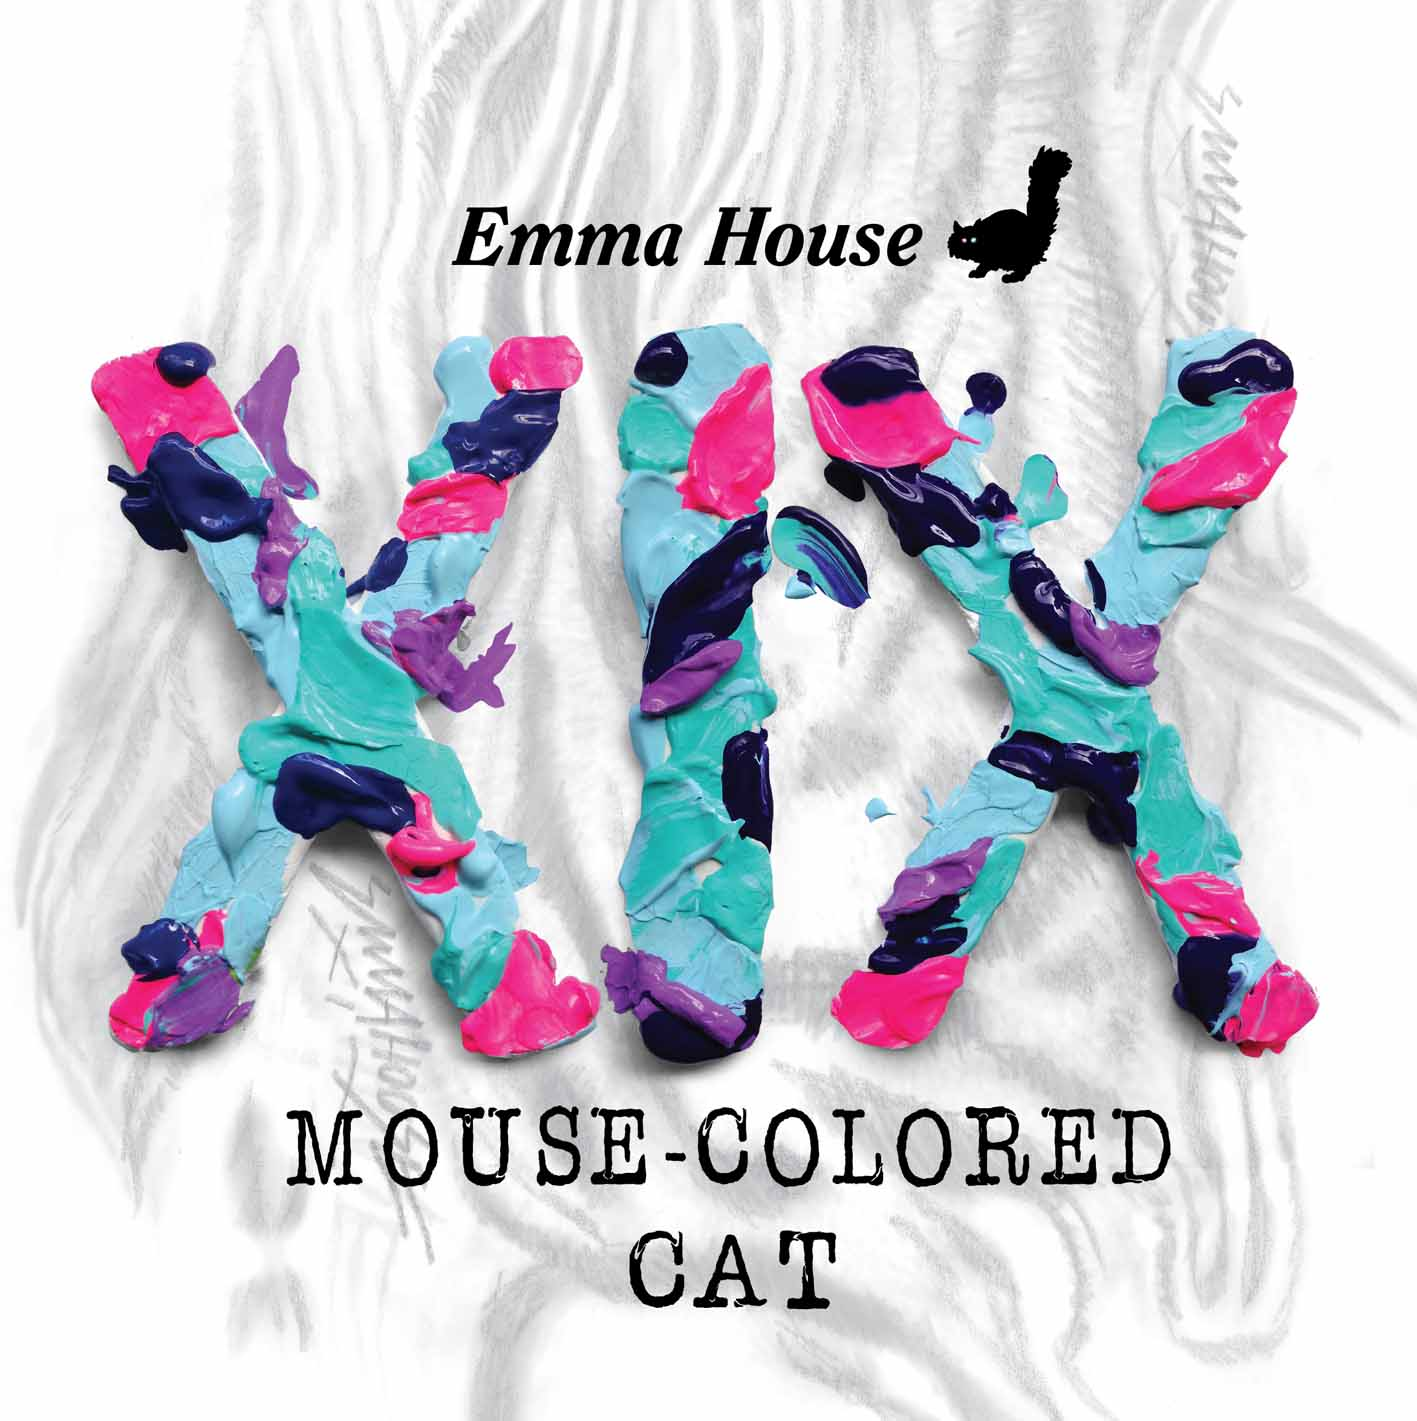 ■DJ EMMA / Emma House Xix Mouse-colored Cat _ 2014.11.12 発売!_f0148146_0592621.jpg